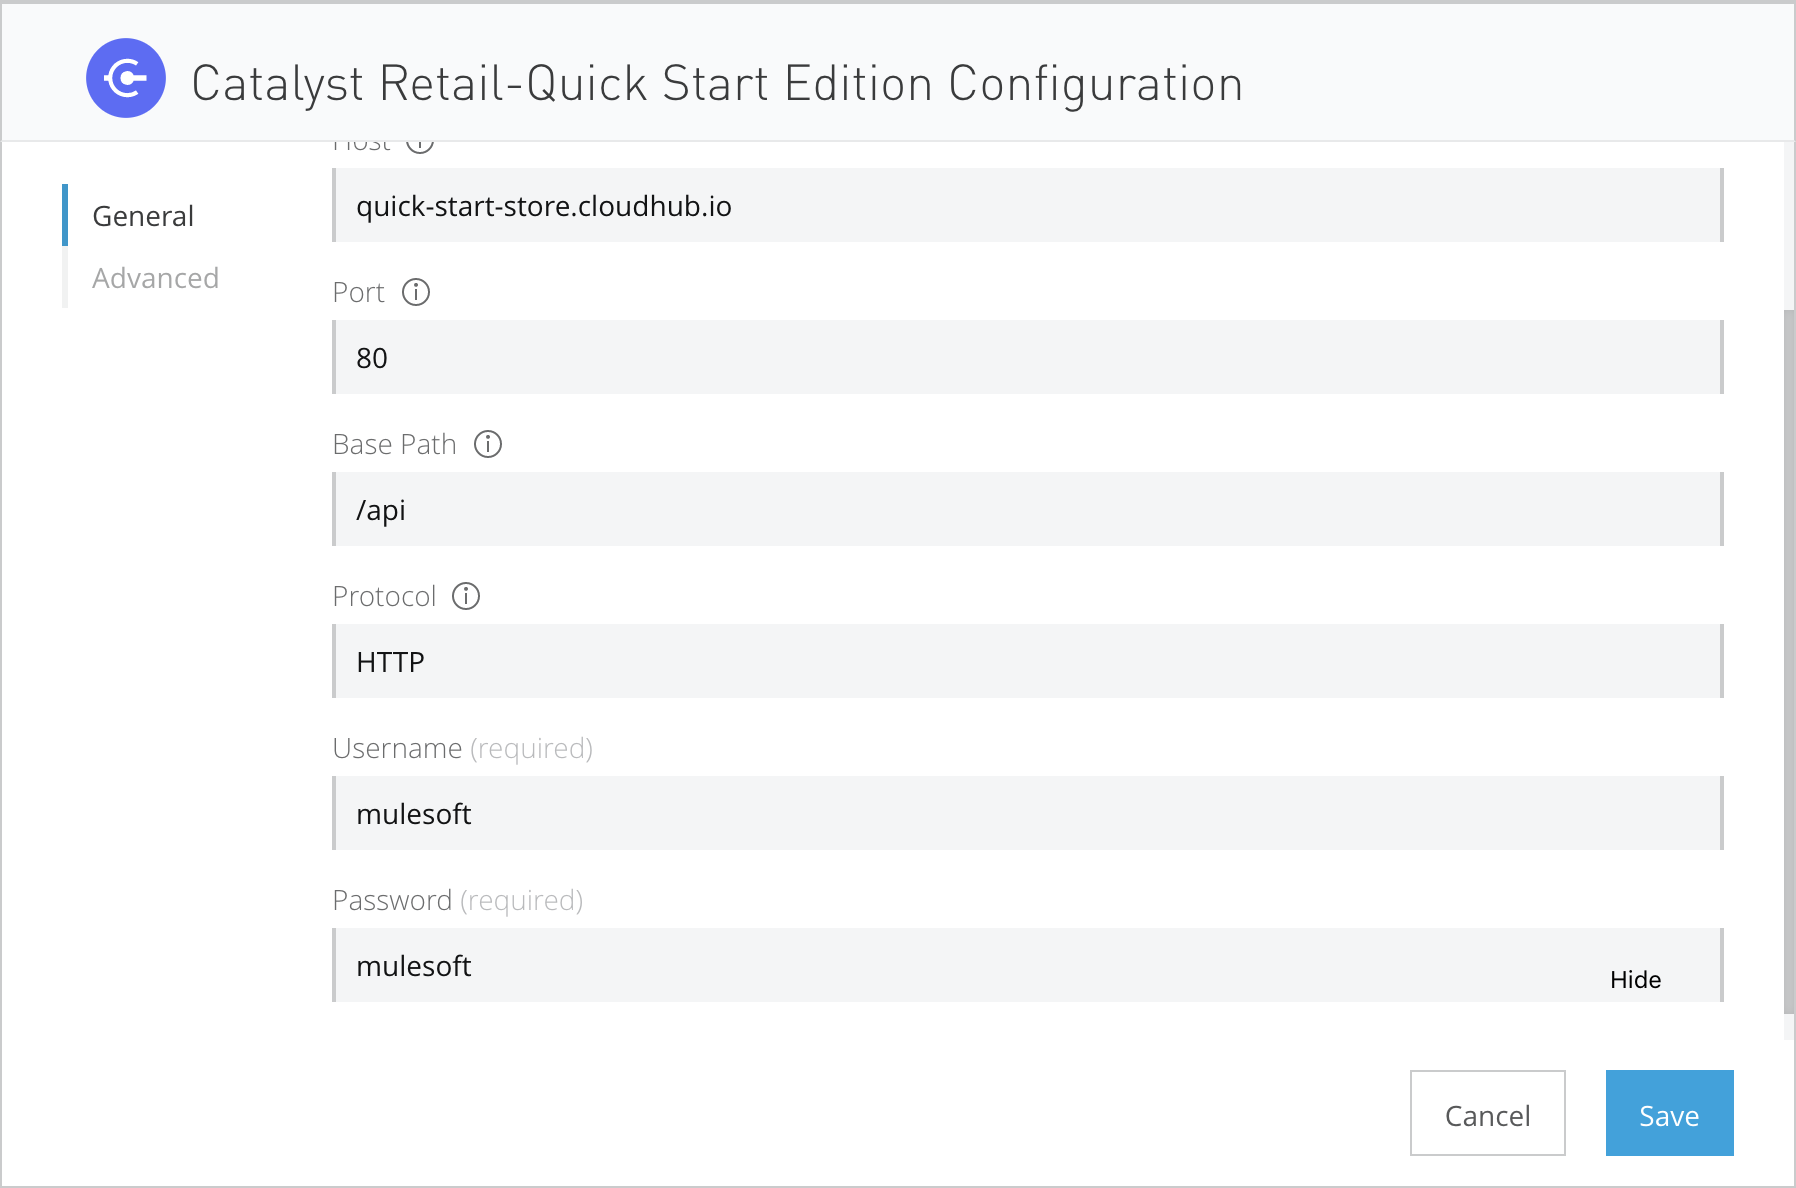 Catalyst Retail Quick Start Edition connector configuration